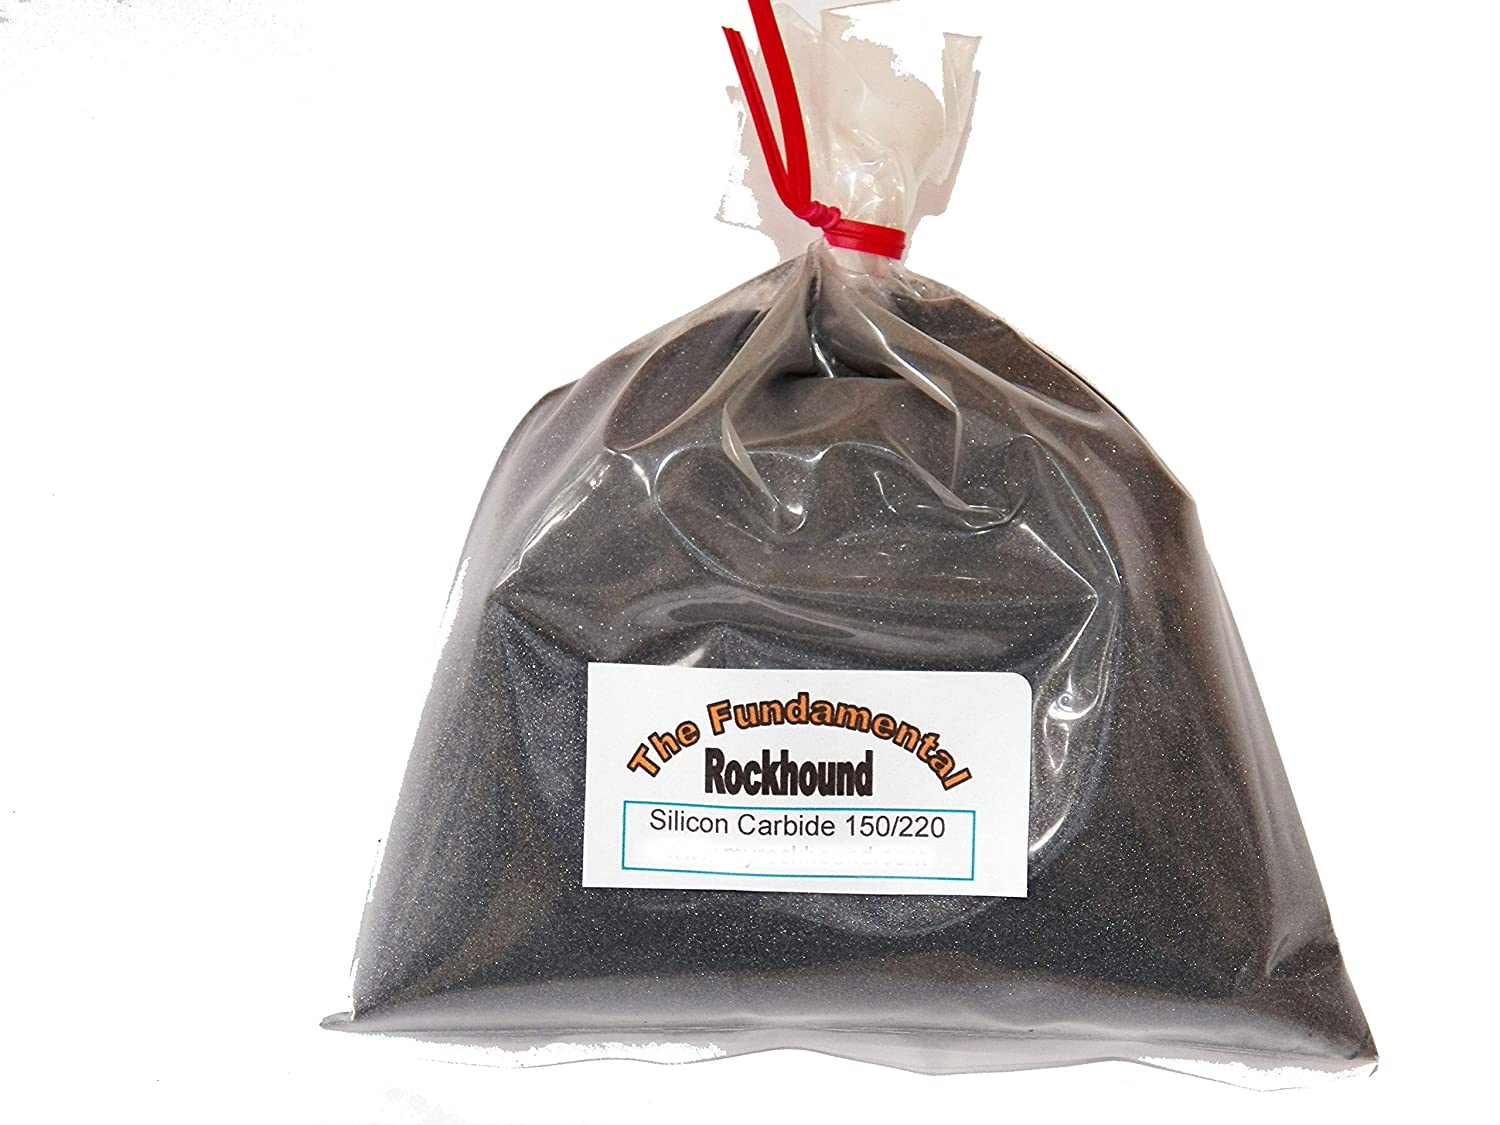 Fundamental Rockhound Products 5 lb 150//220 Medium GRIT for Rock Tumbling polishing Silicon Carbide